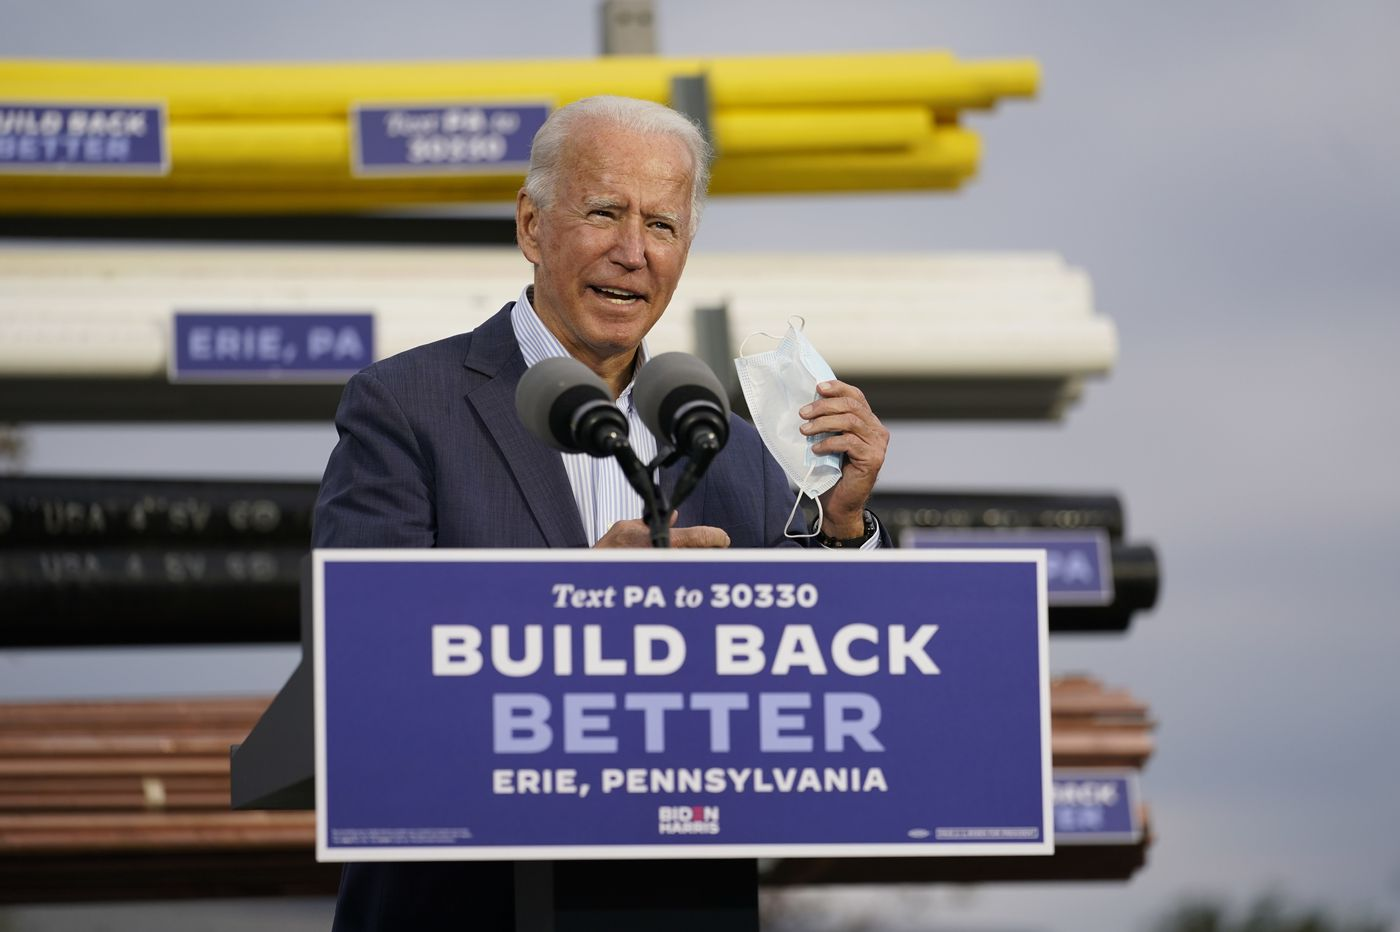 Biden courts swing voters in Pennsylvania while Trump rallies at the White House